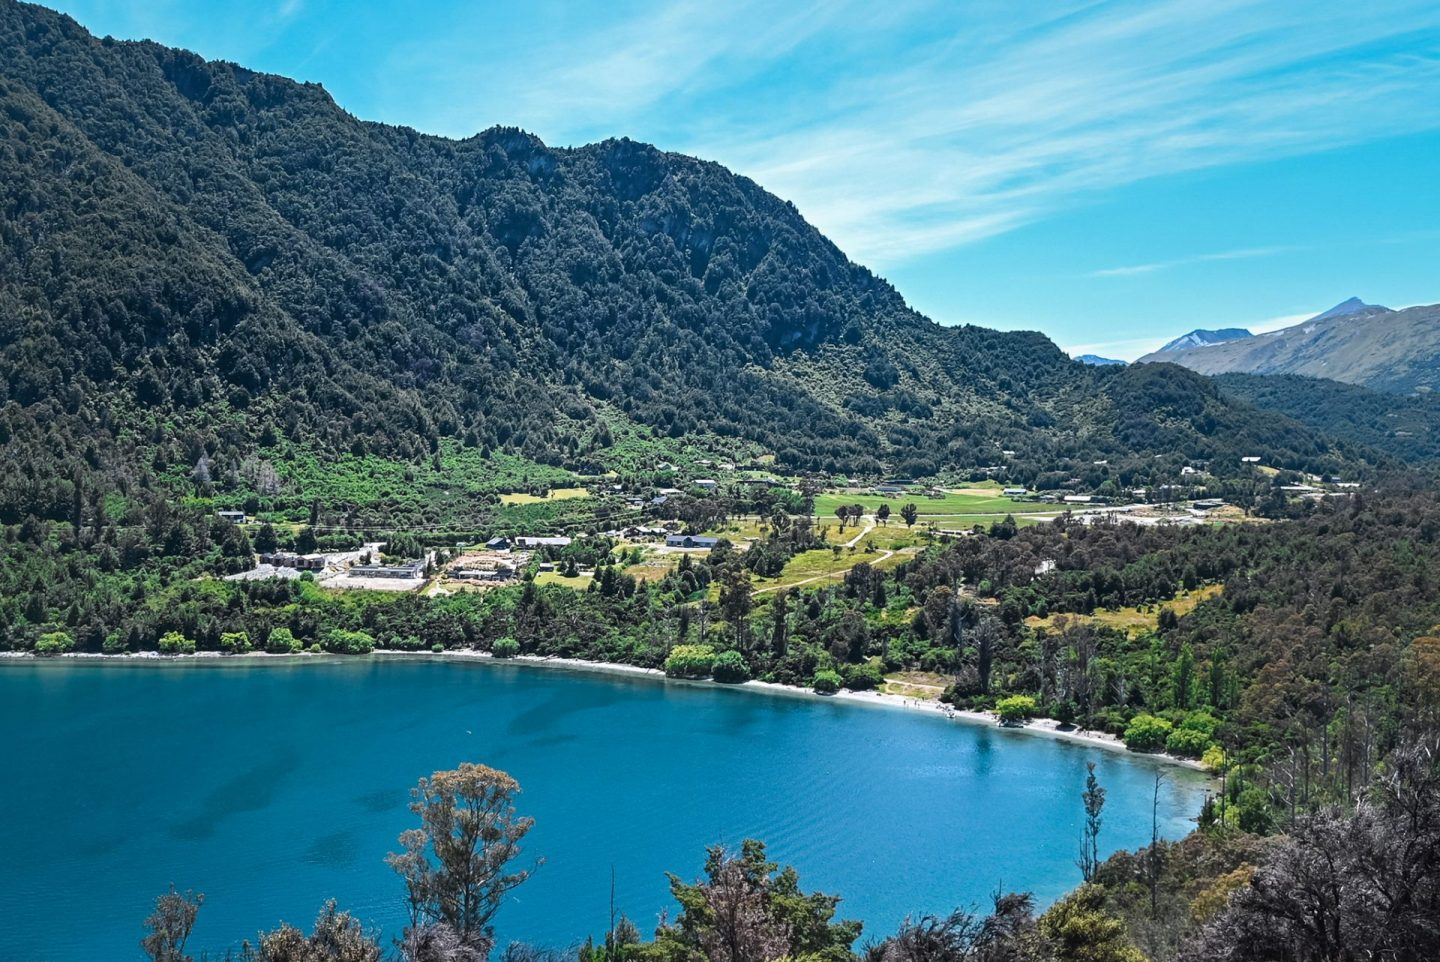 Bob's Cove Track - Things to Do in Queenstown If You're NOT an Adrenaline Junkie